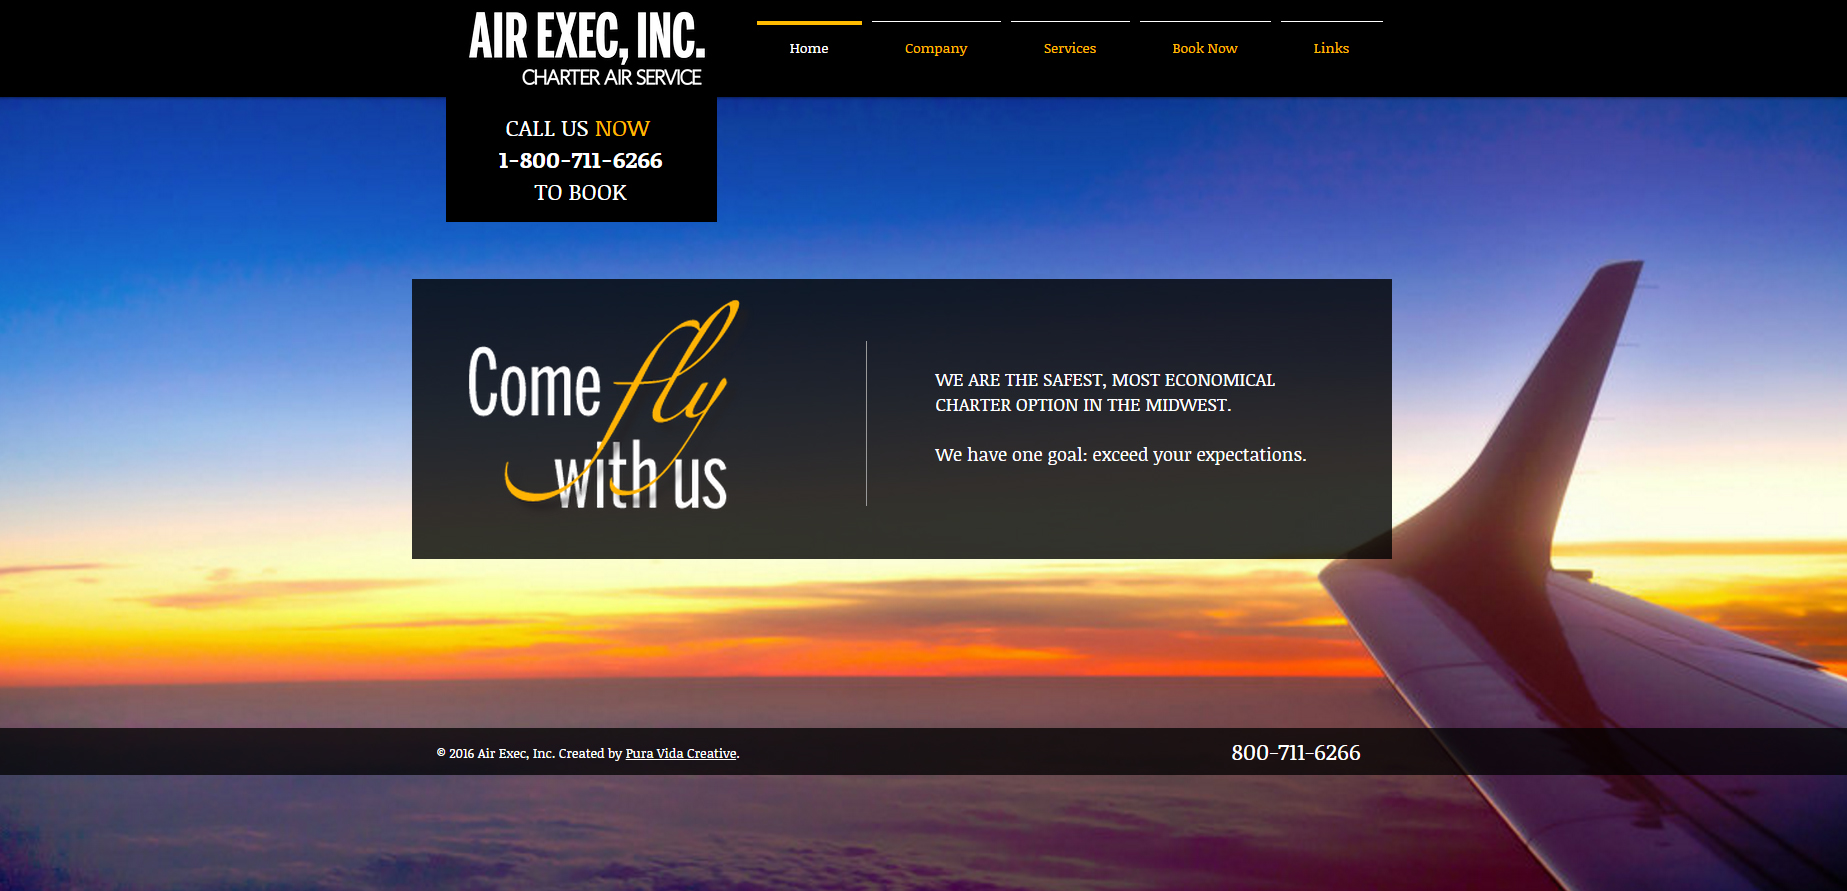 Air Exec, Inc